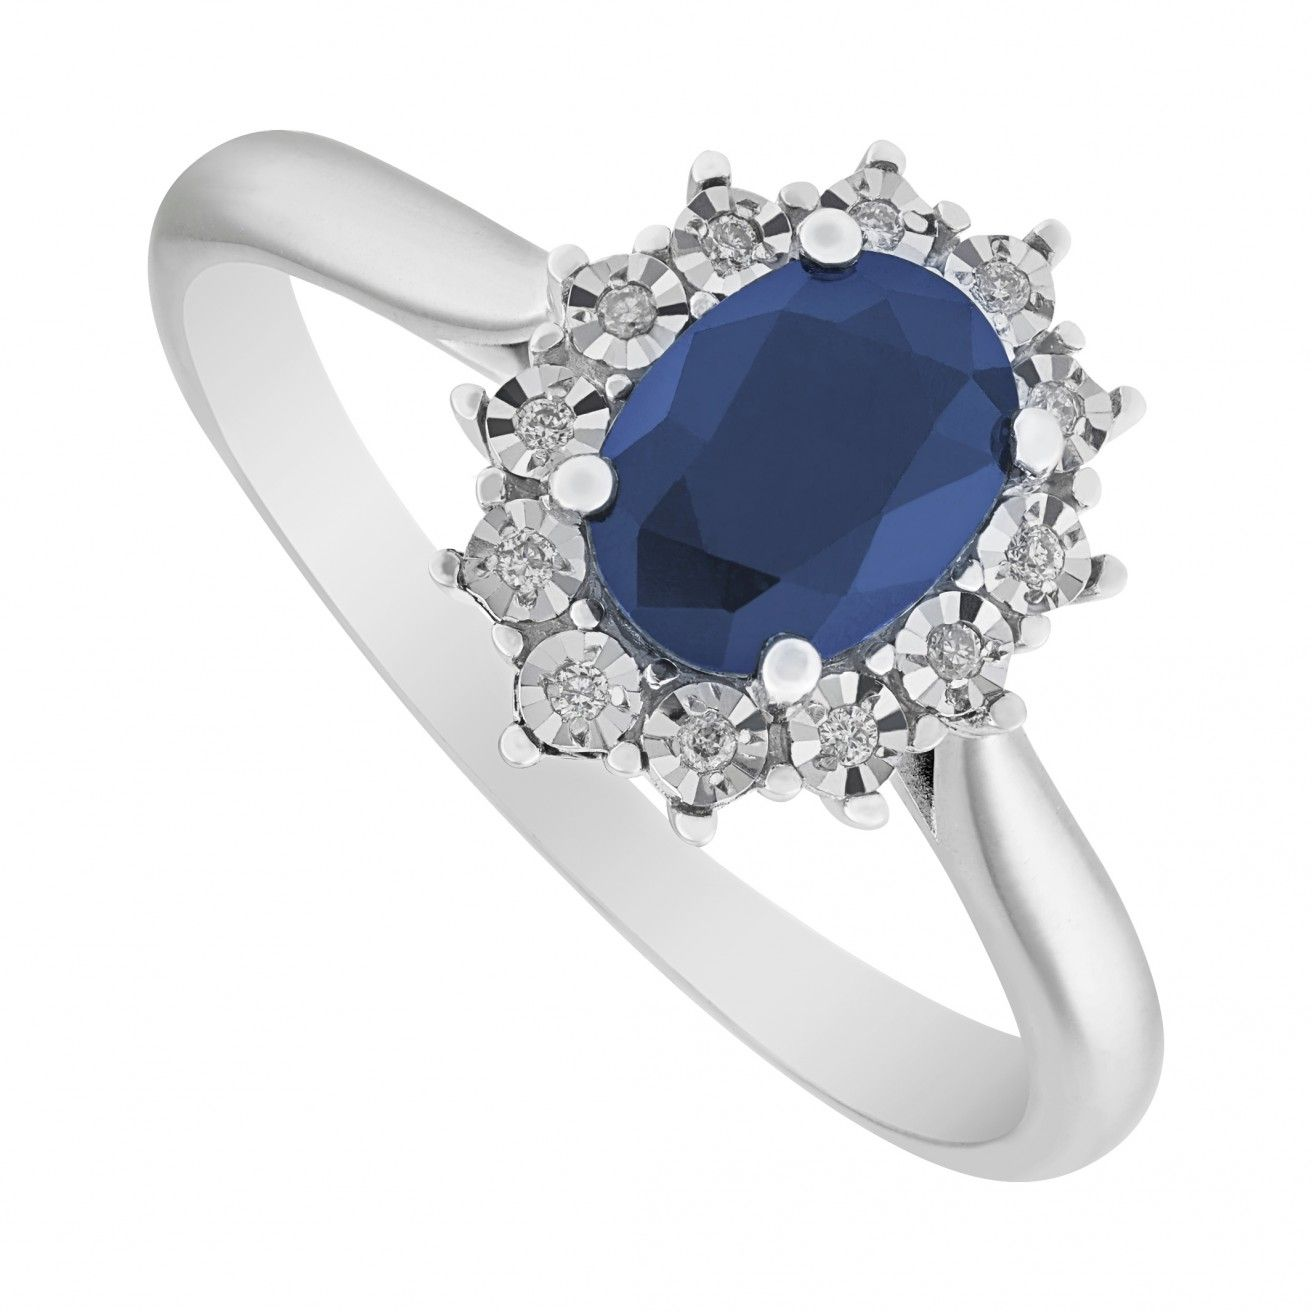 Miore Women's 9 ct White Gold Oval Sapphire Ring 1cH57F